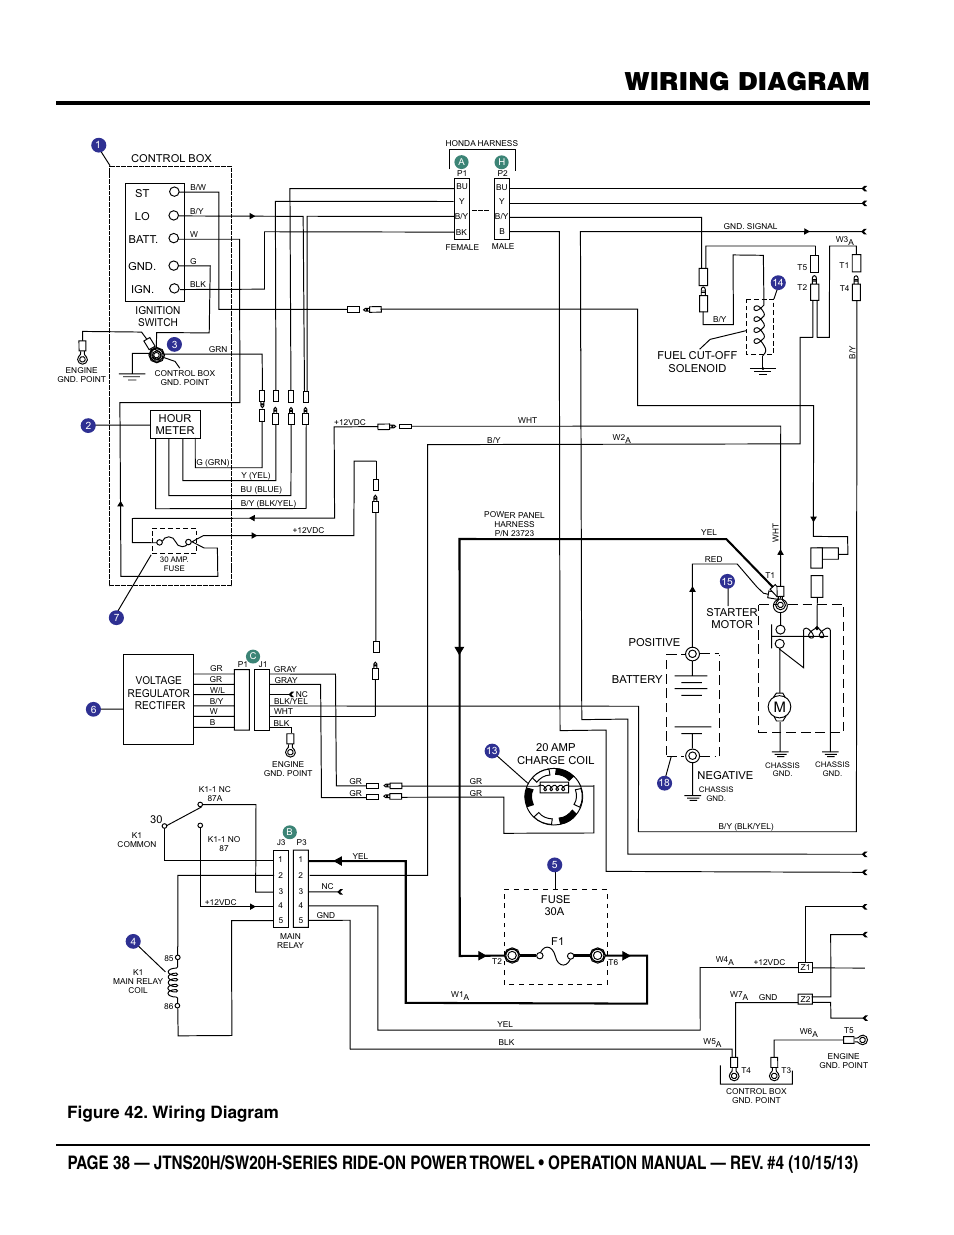 Honda Grazia User Wiring Diagram